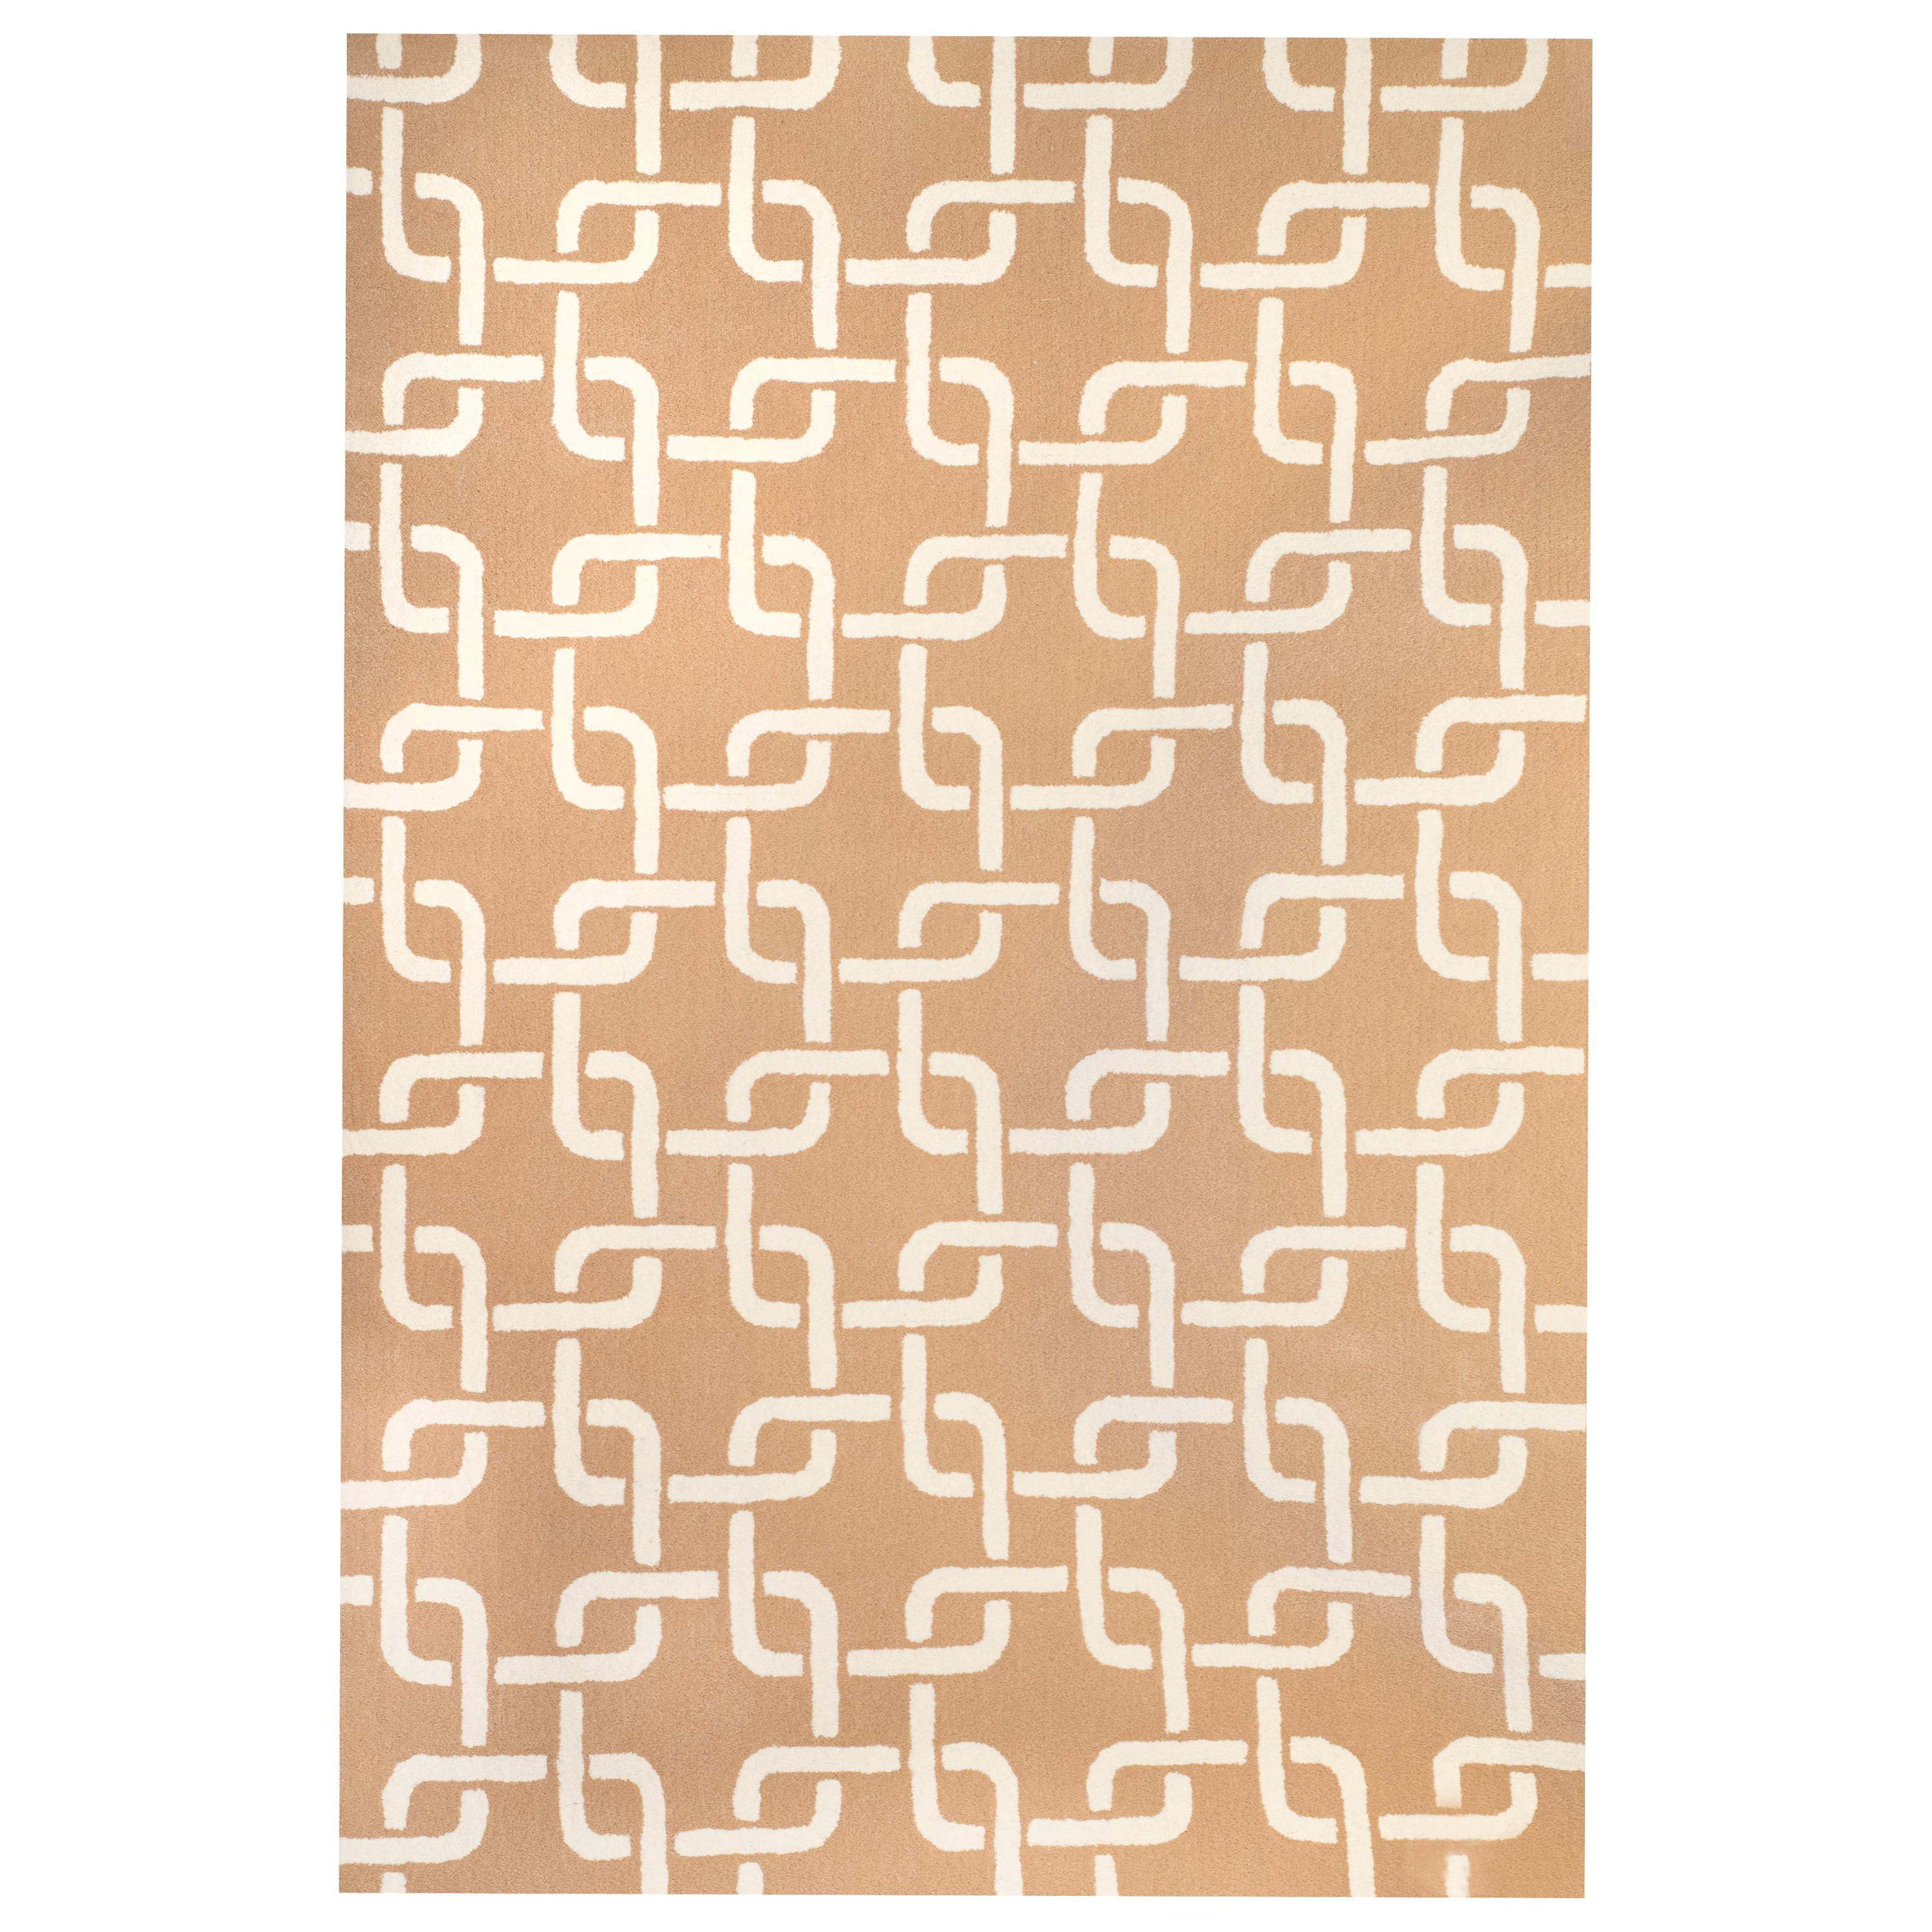 Kilombo Home 21st Century Hand Tufted Wool Rug Made in Spain Beige & White Chain